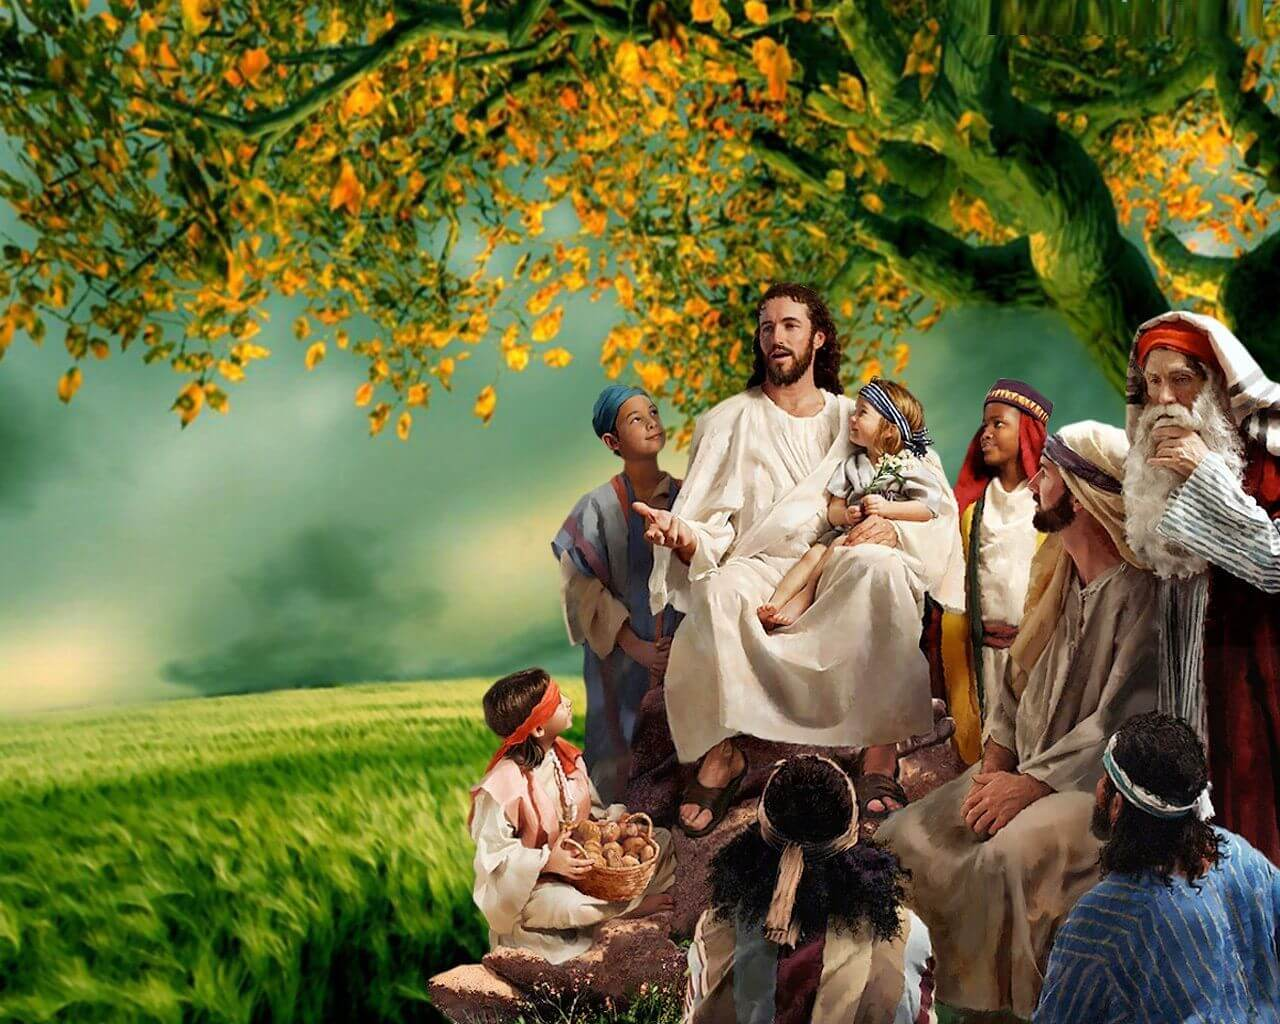 Jesus Wallpapers Download   Holy Pictures Of Jesus 1280x1024